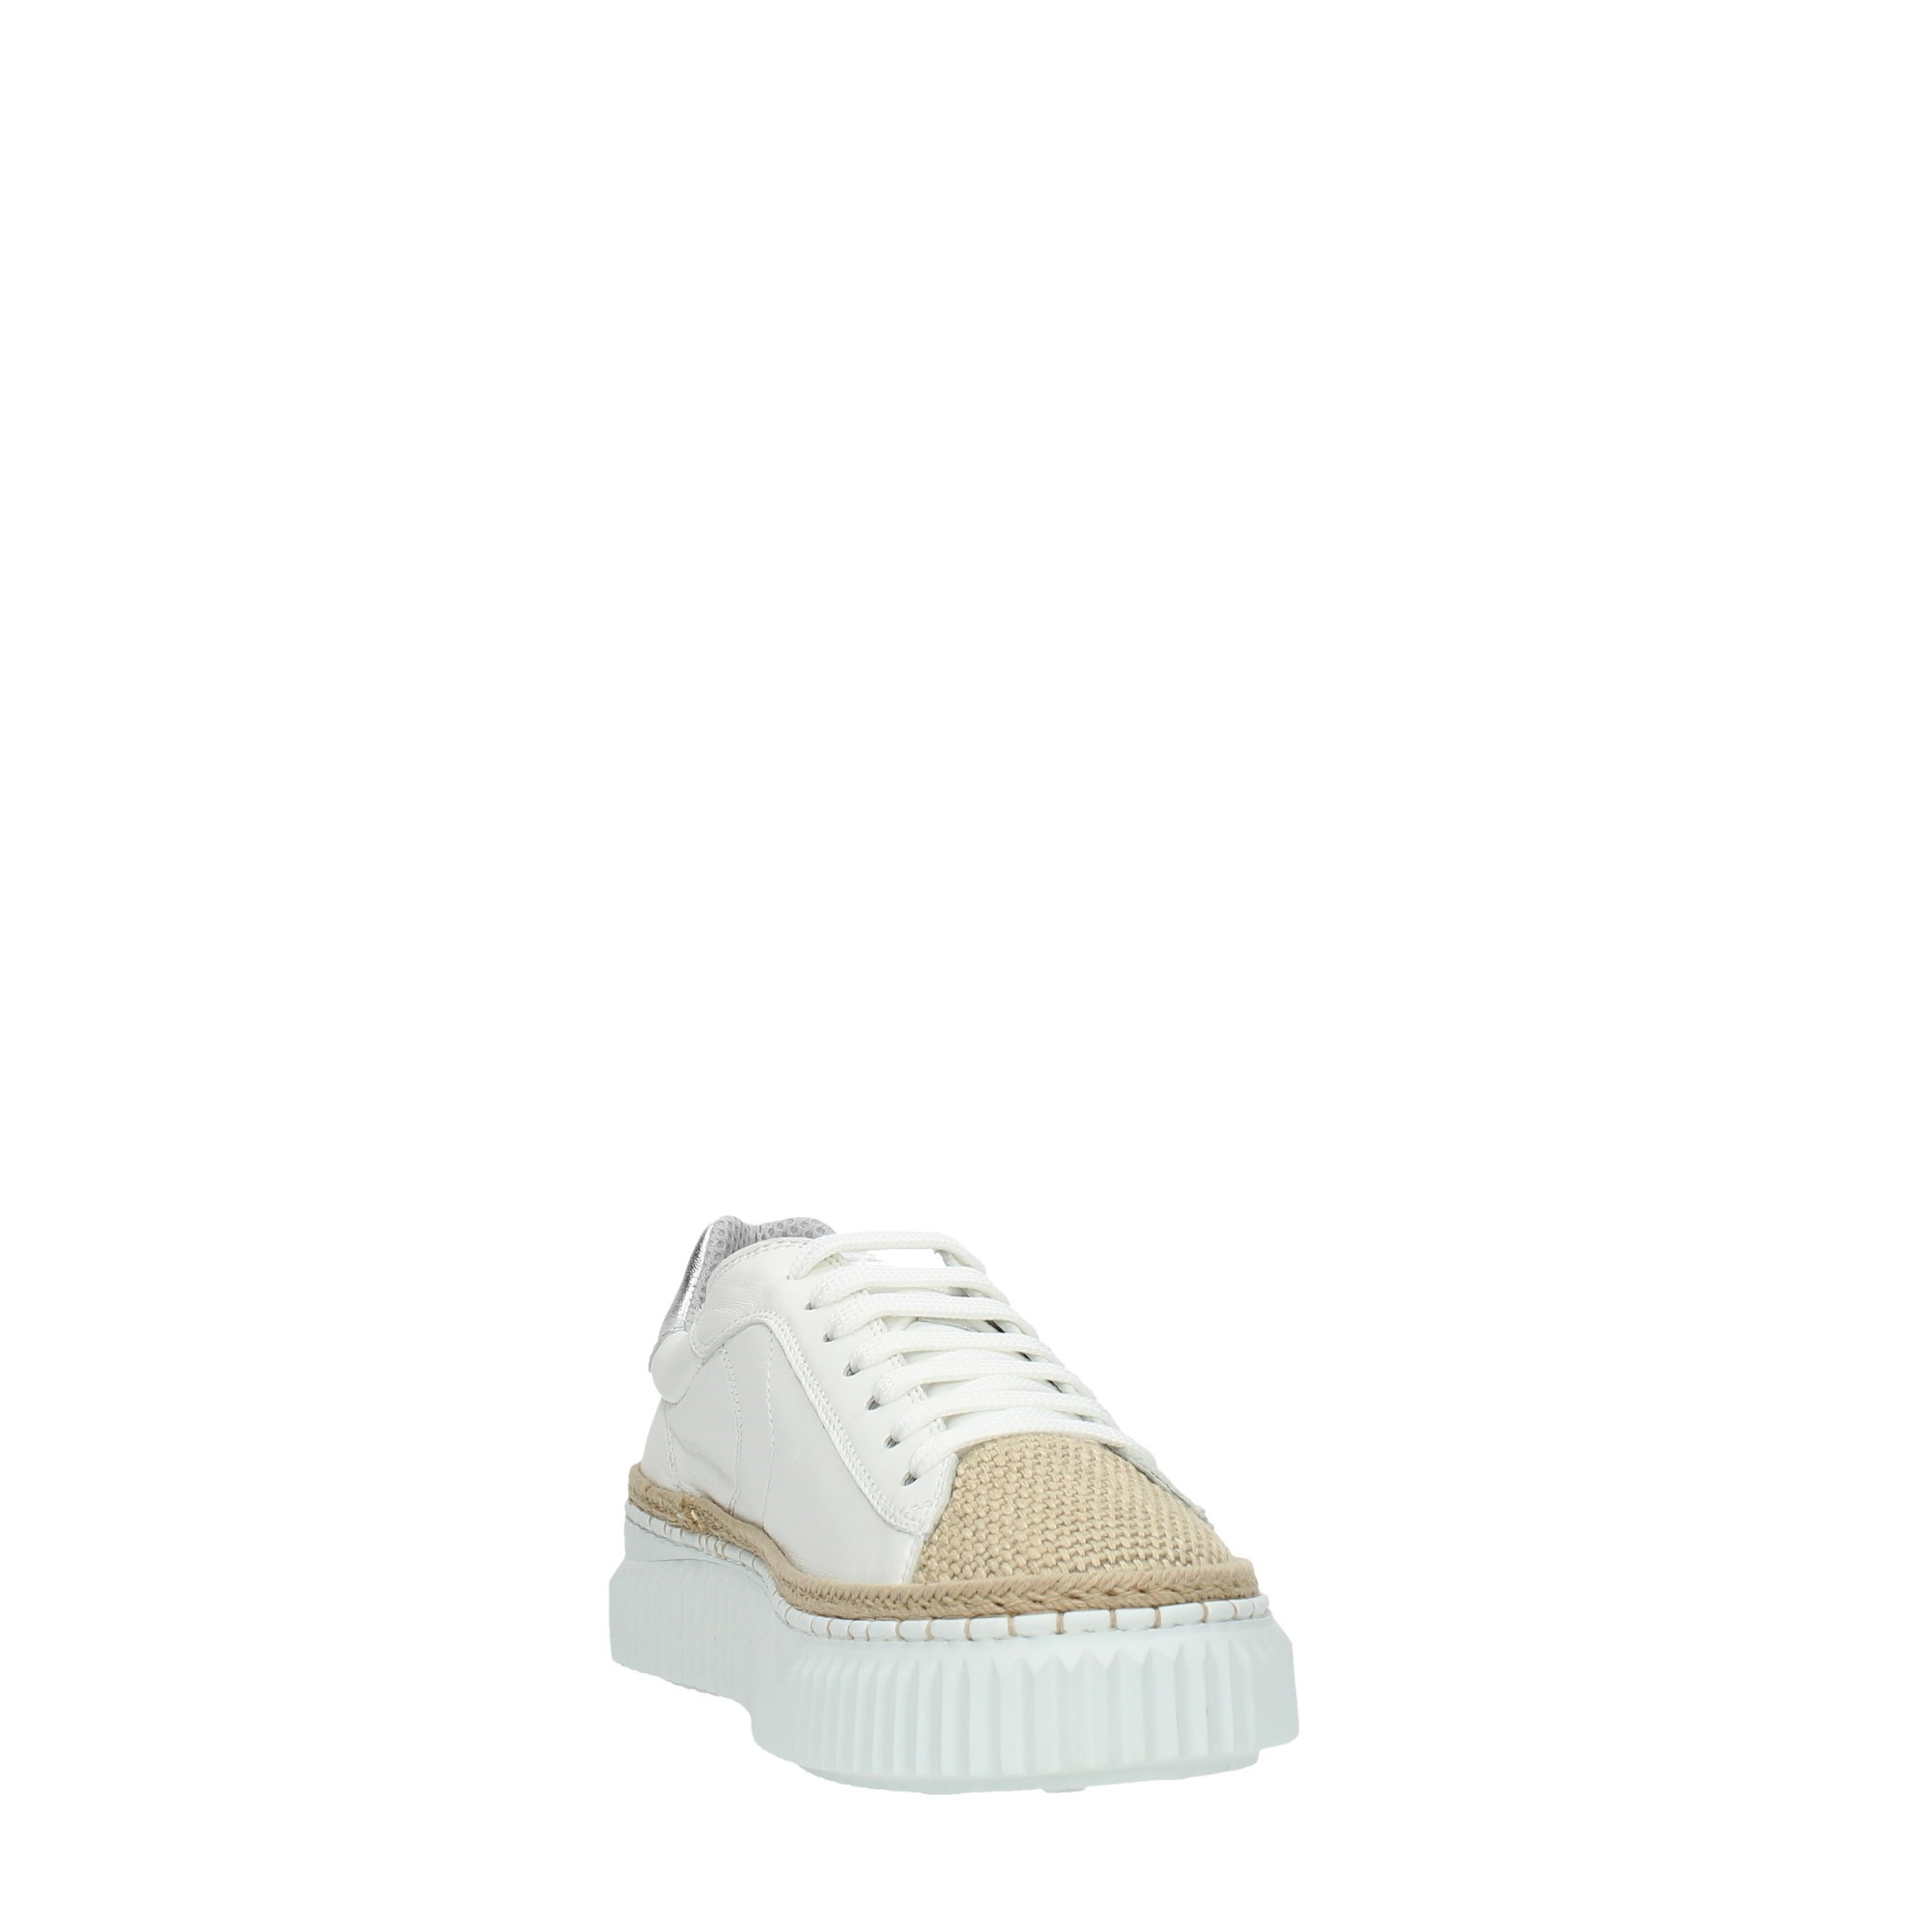 Voile Blanche Shoes Women Sneakers White PANAREA II